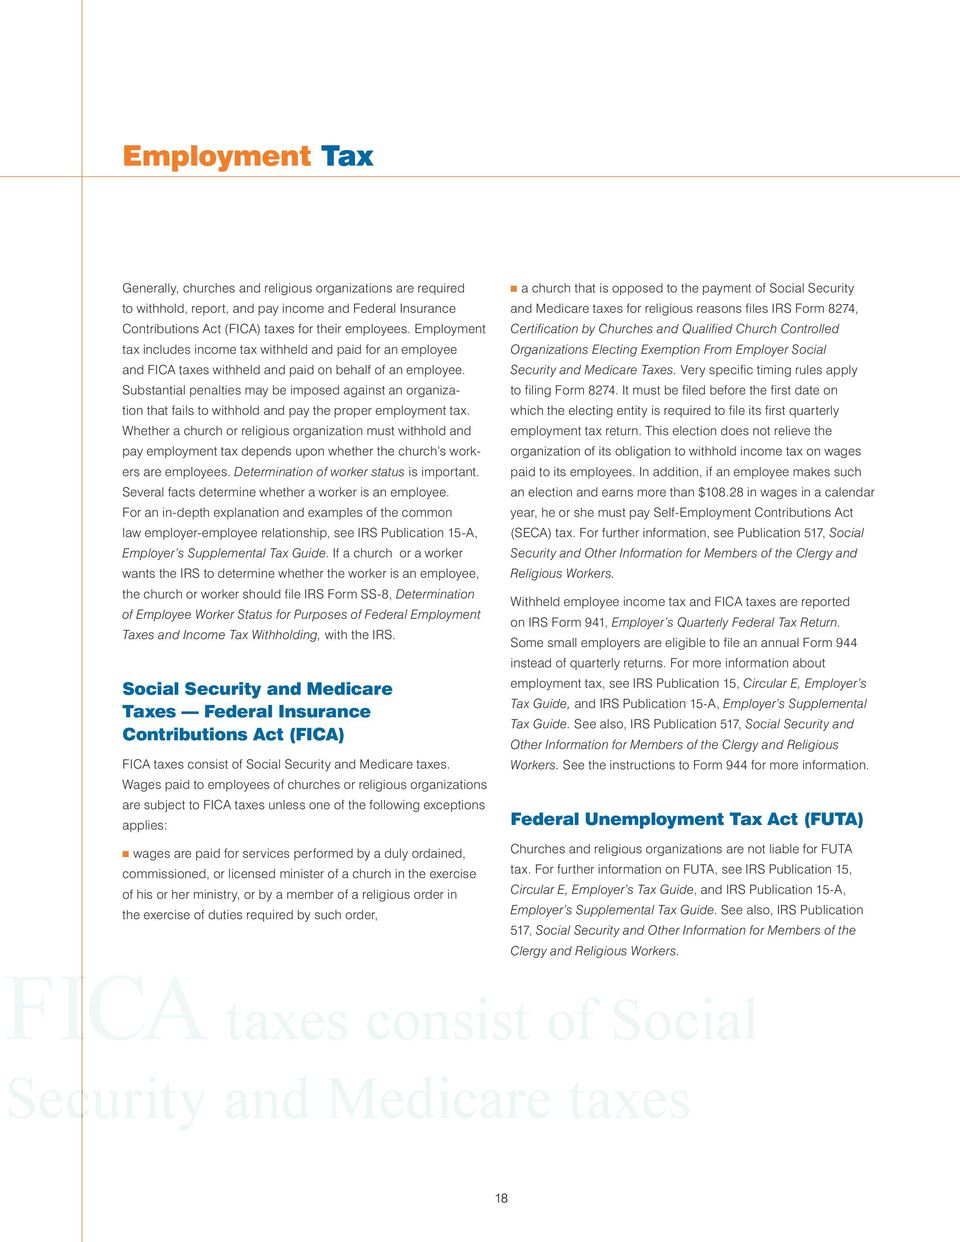 Substantial penalties may be imposed against an organization that fails to withhold and pay the proper employment tax.